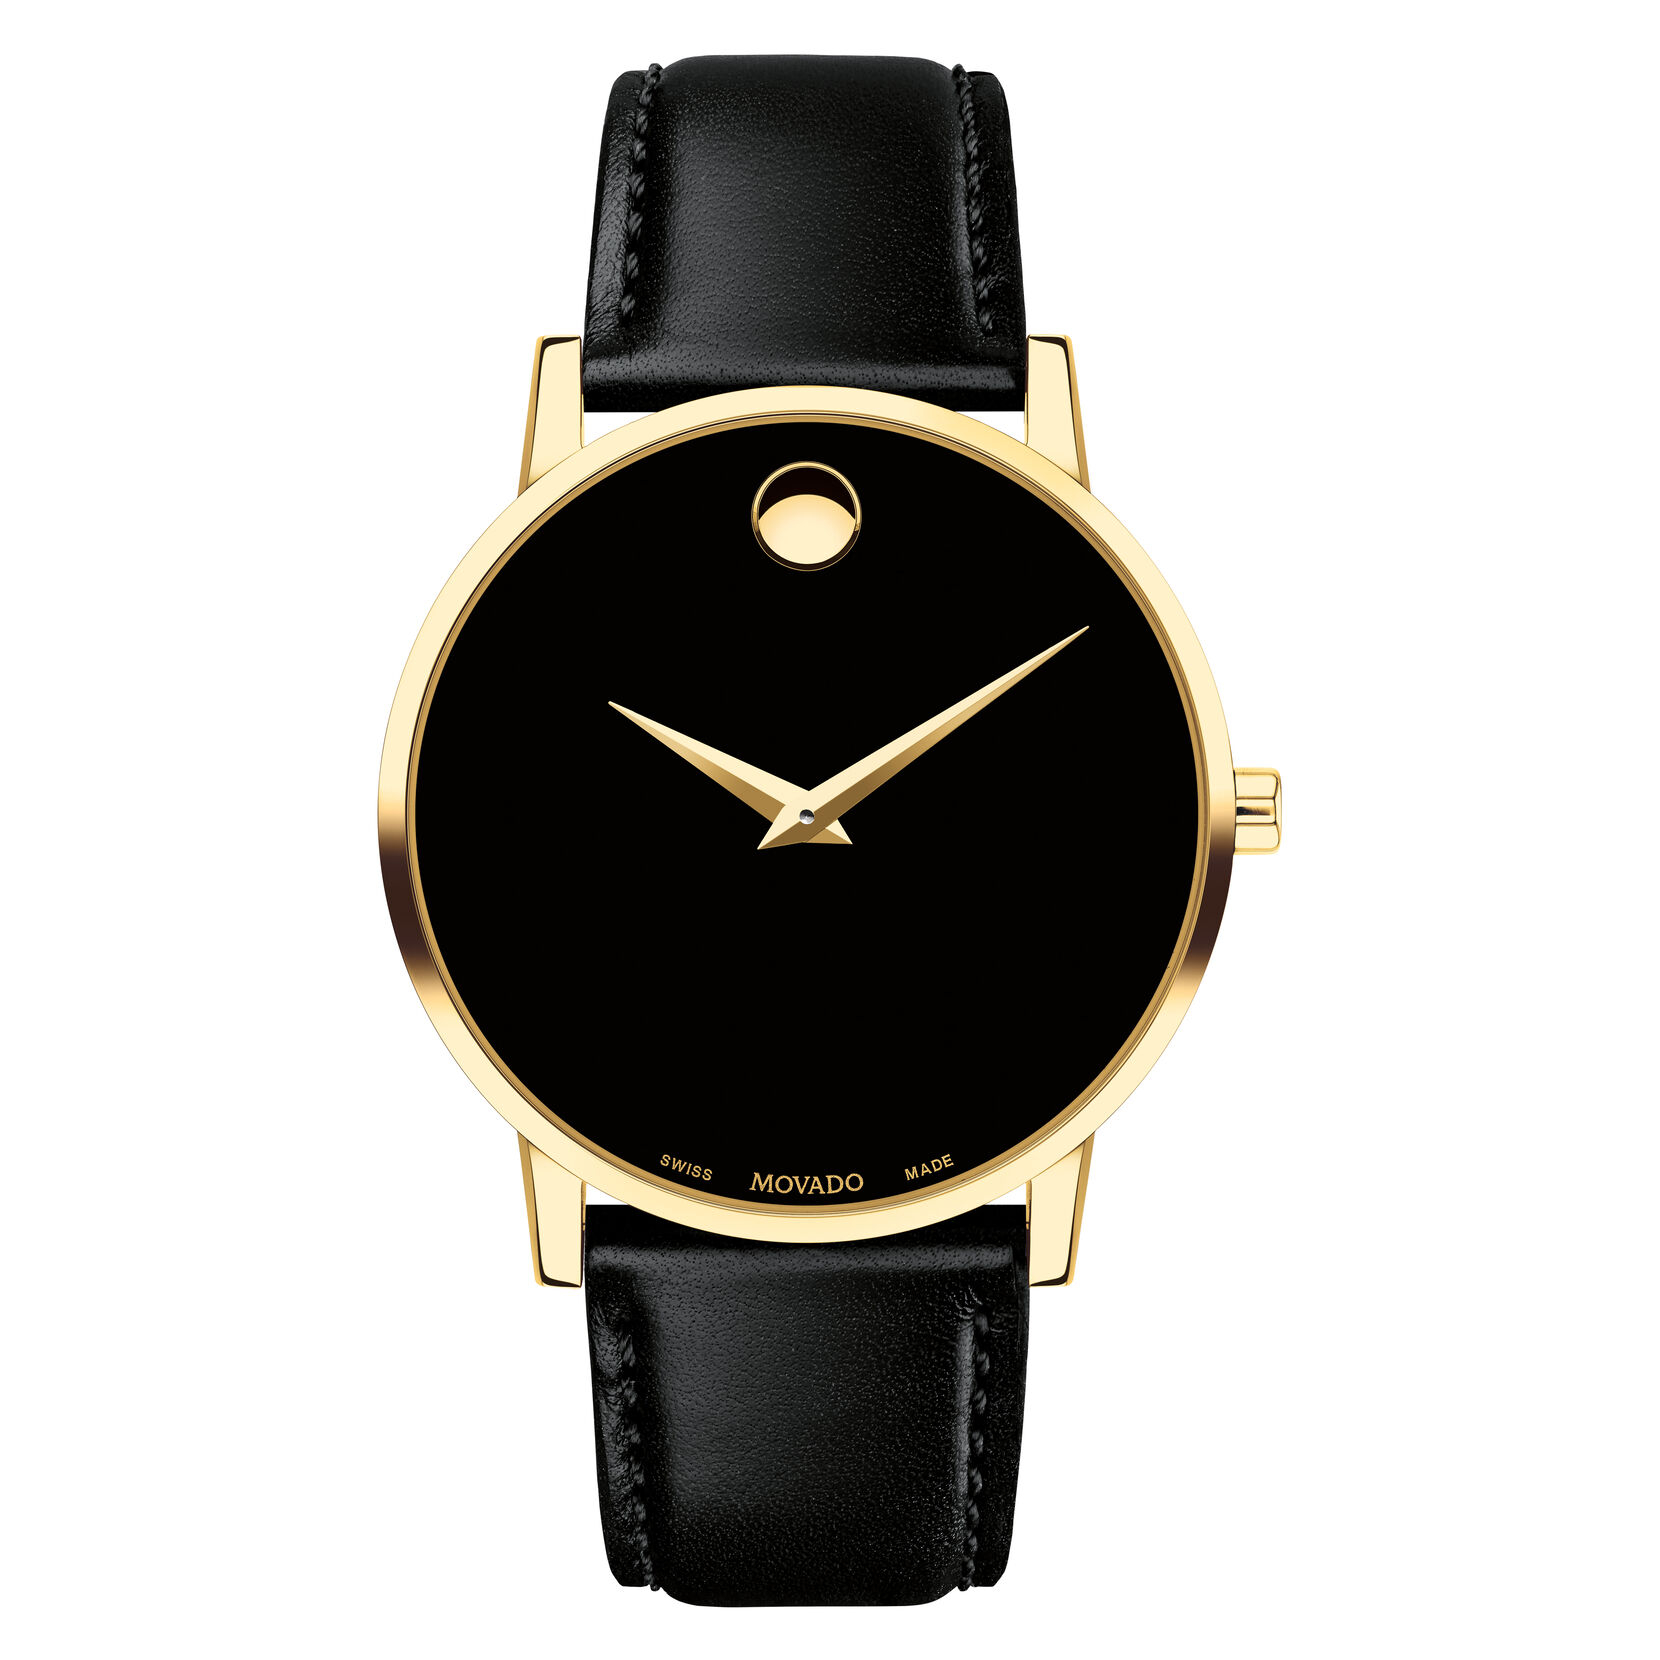 Movado Museum Watch, Minimalist, Clean Looking Face, Watch Dial